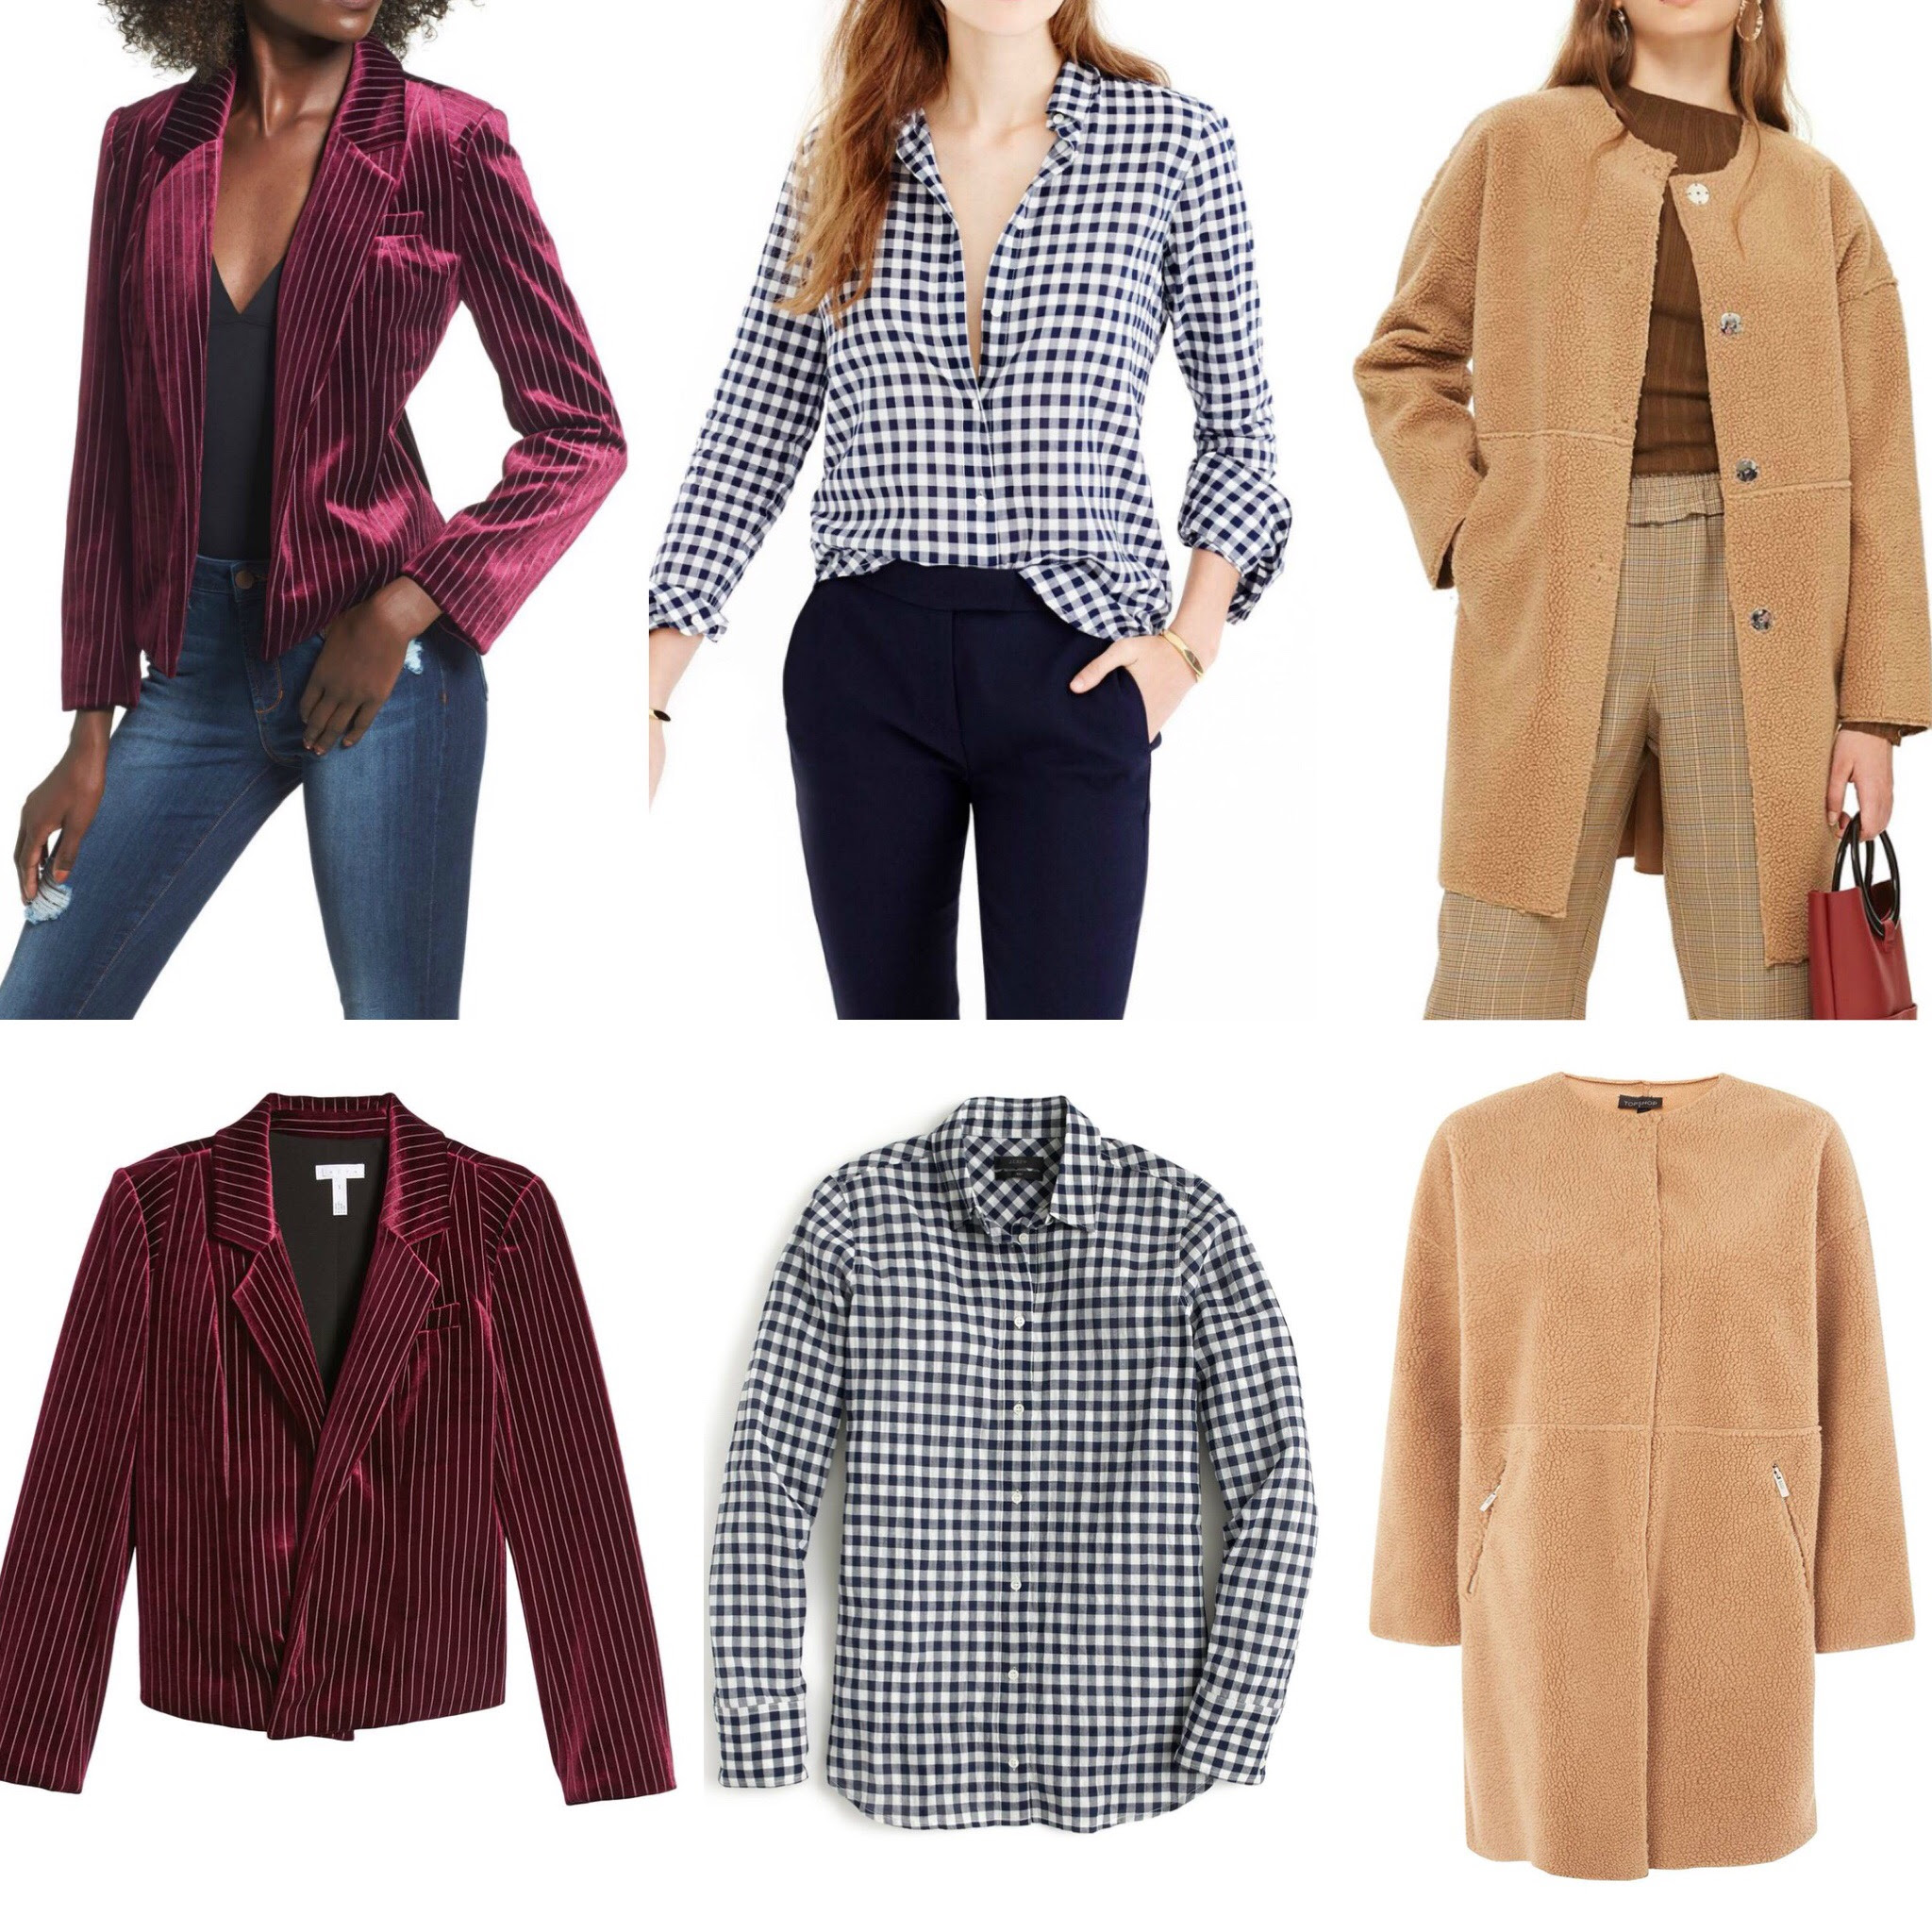 Business-Casual Stylish Work Outfit Ideas  WorkChic